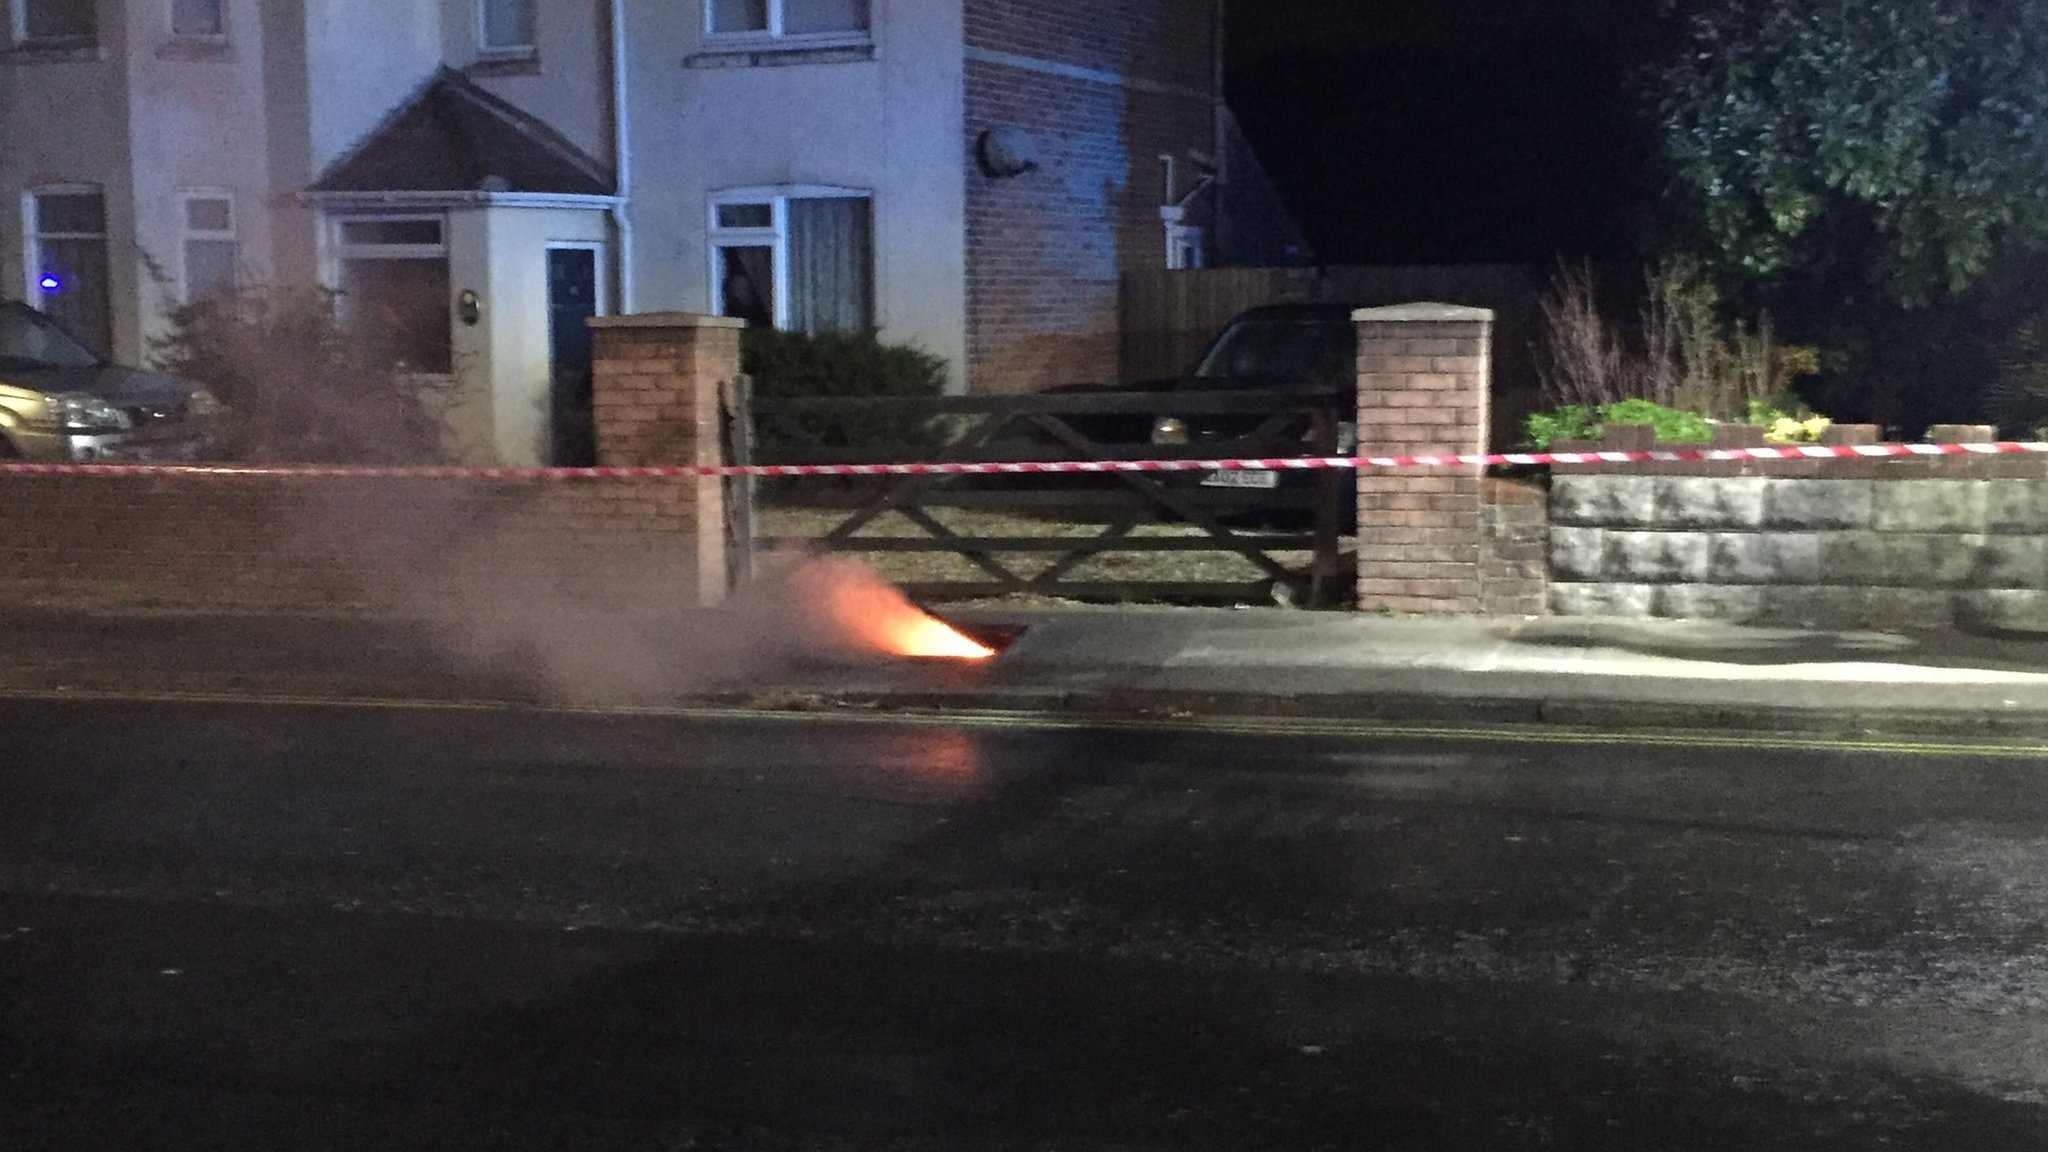 Manhole erupts in flames on Bournemouth footpath